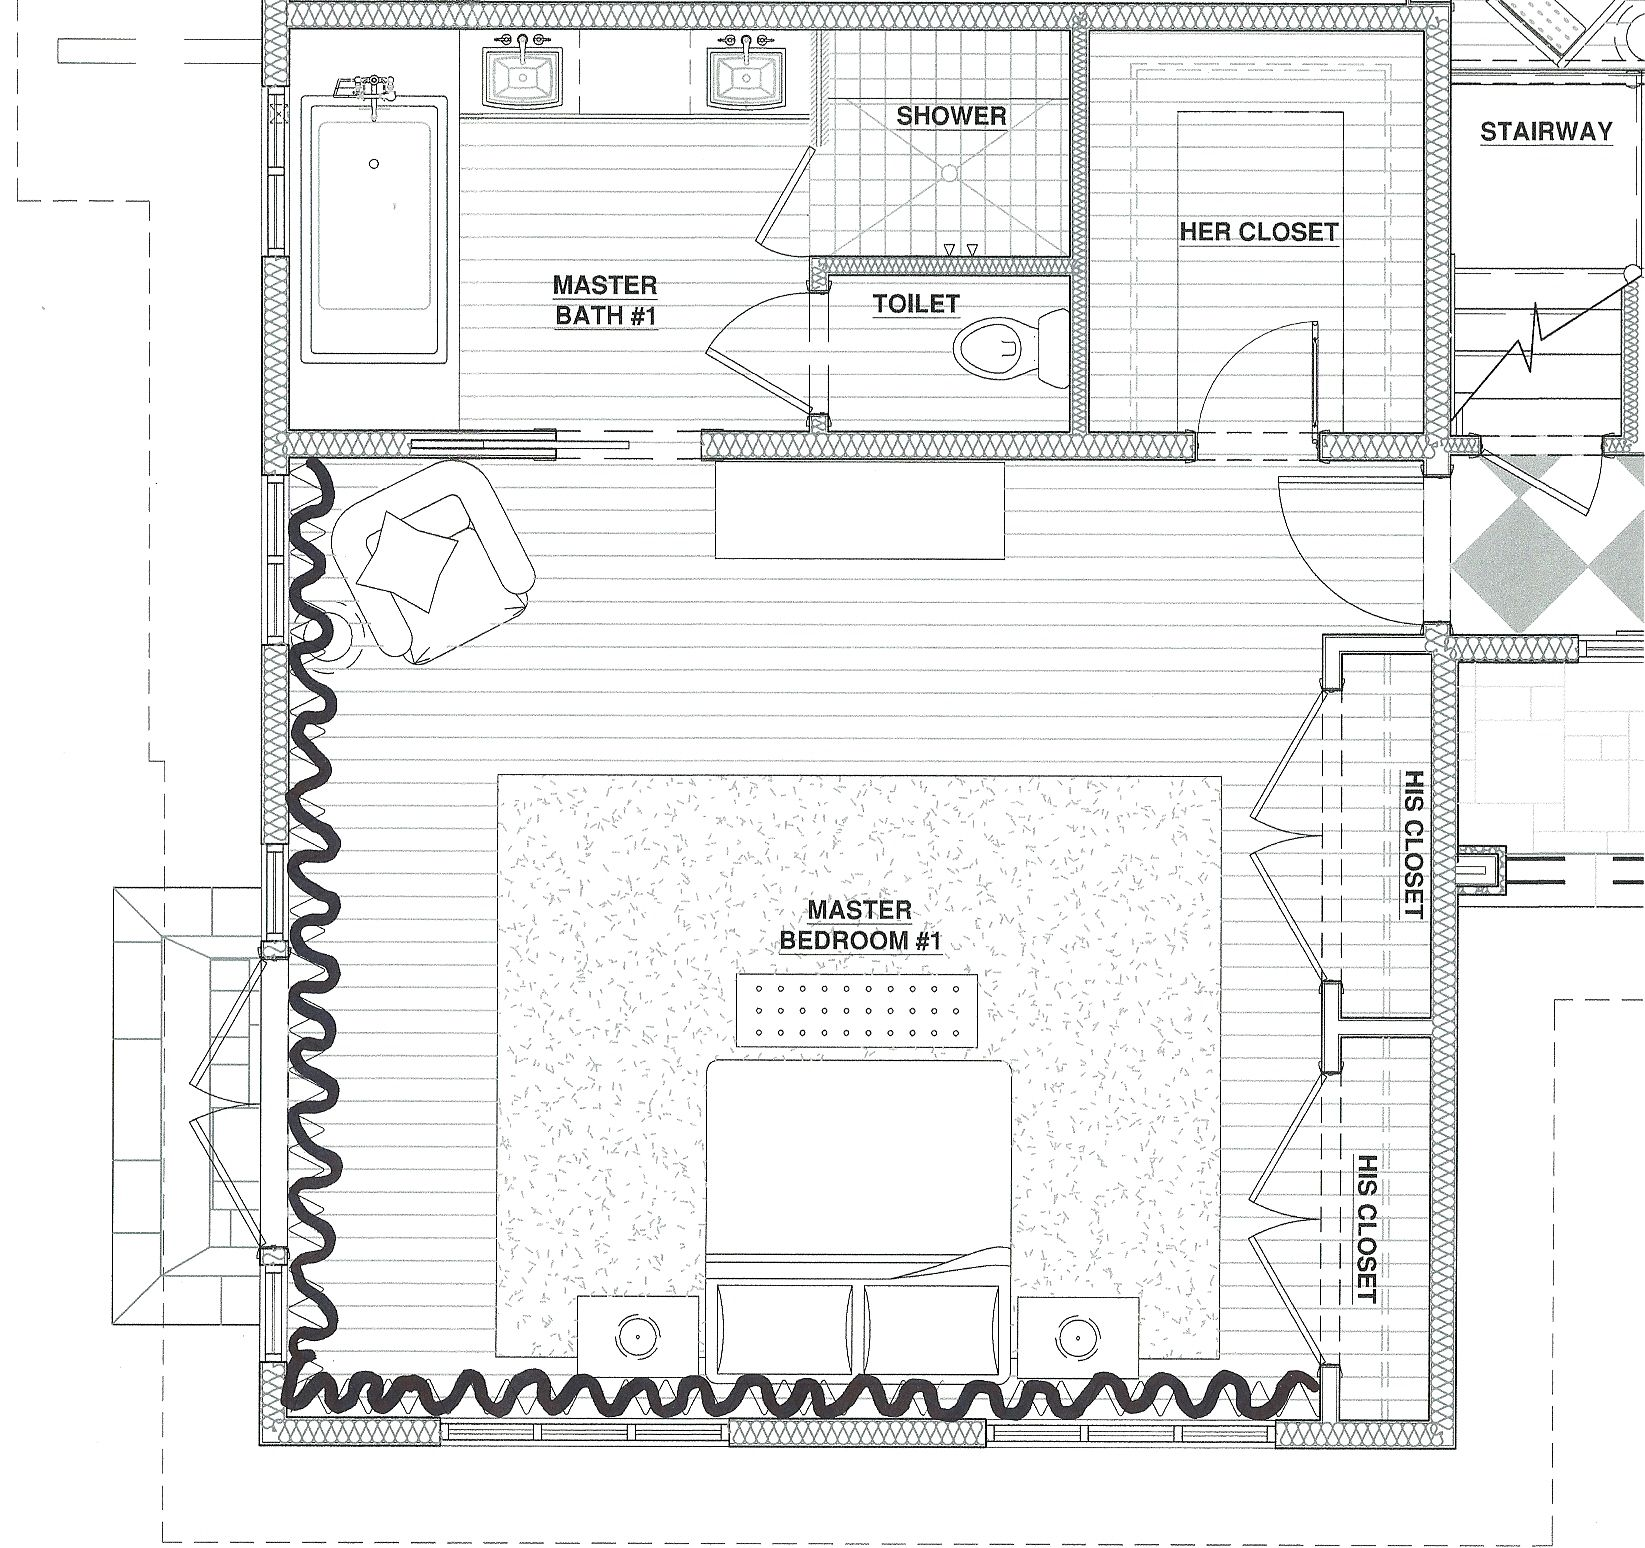 Master bedroom floor plans picture gallery of the master bedroom floor plan ideas master Plans of master bedroom